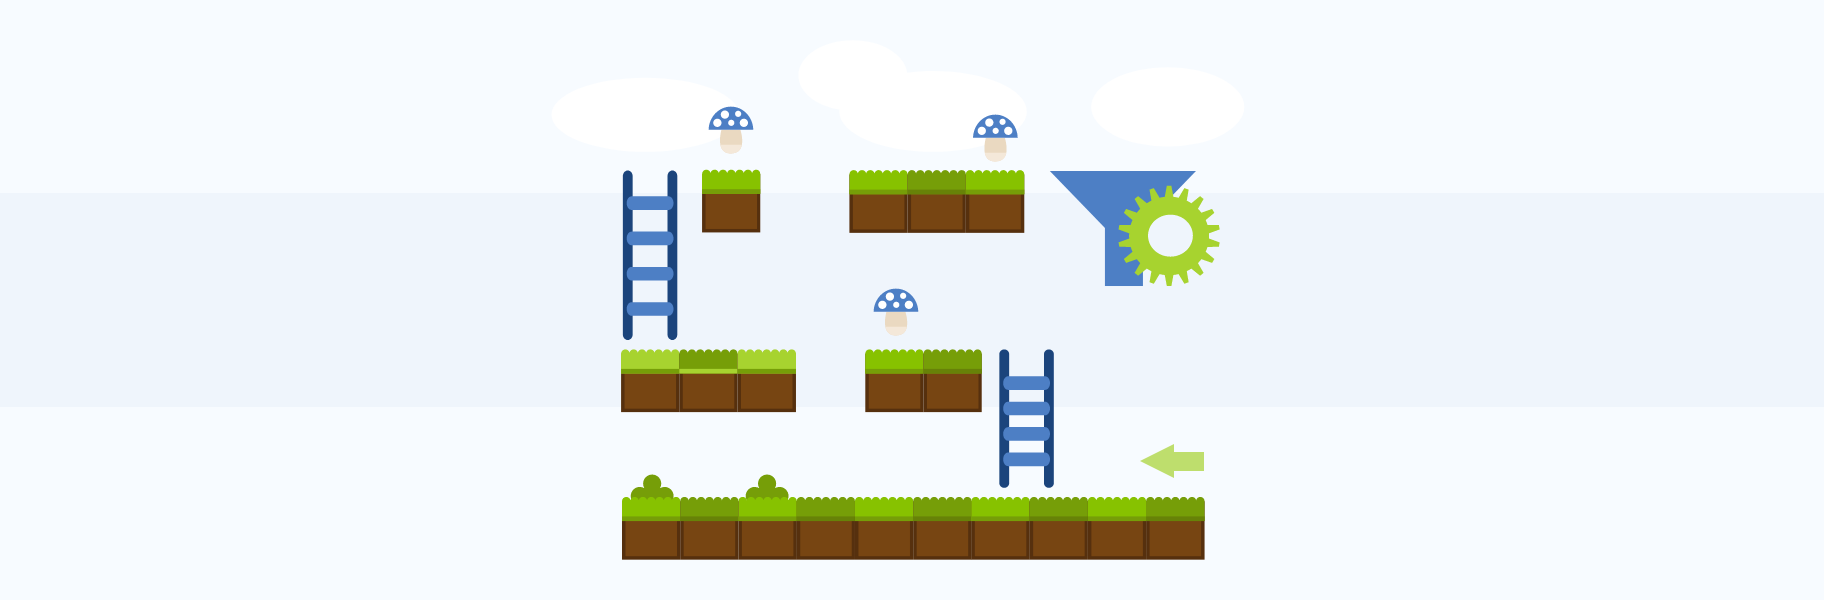 methods for gamification marketing